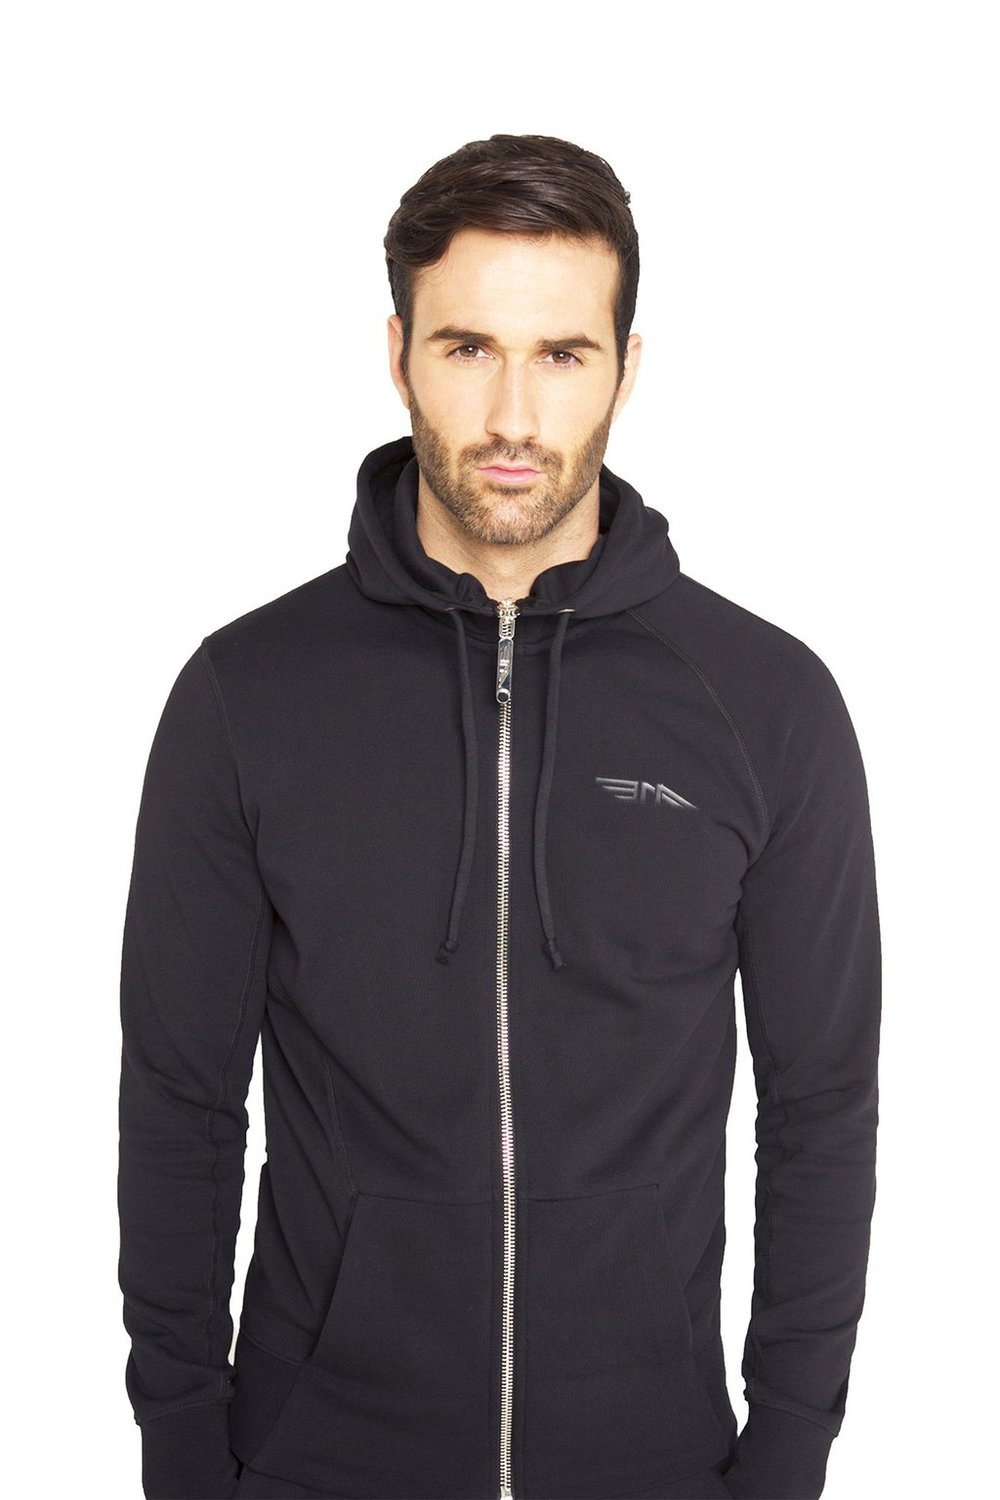 BAA-Clothing-Mens-Hoodied-Zip-Through-Sweatshirt-Front_1024x.jpg